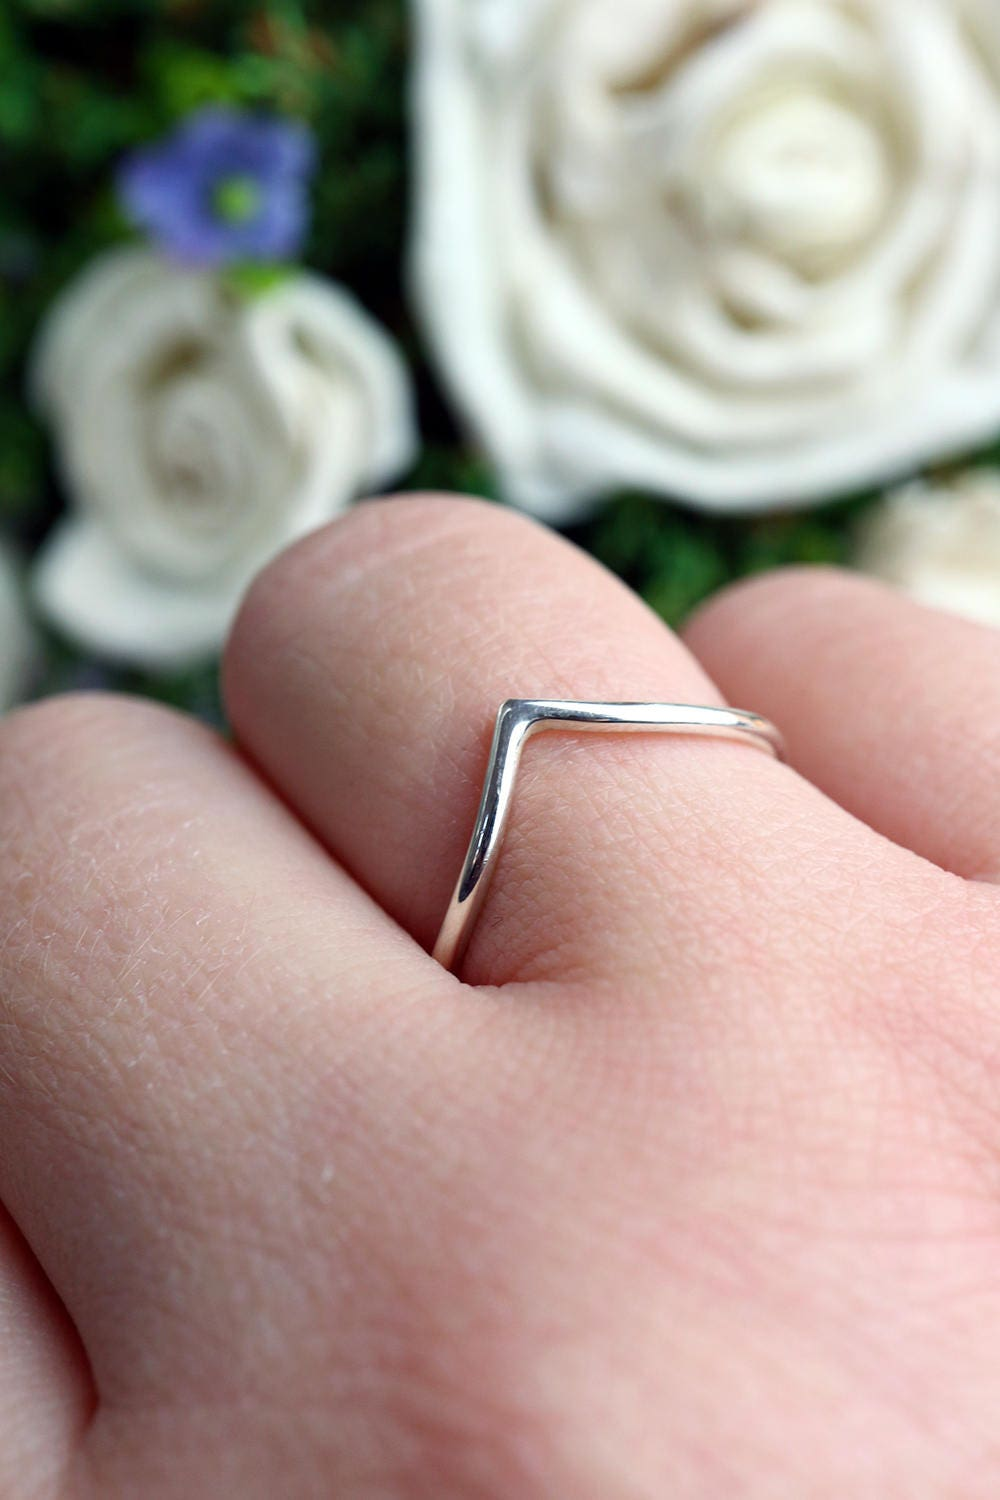 Silver Chevron Ring - 925 Sterling Wishbone Ring - Wave Knuckle Ring ...